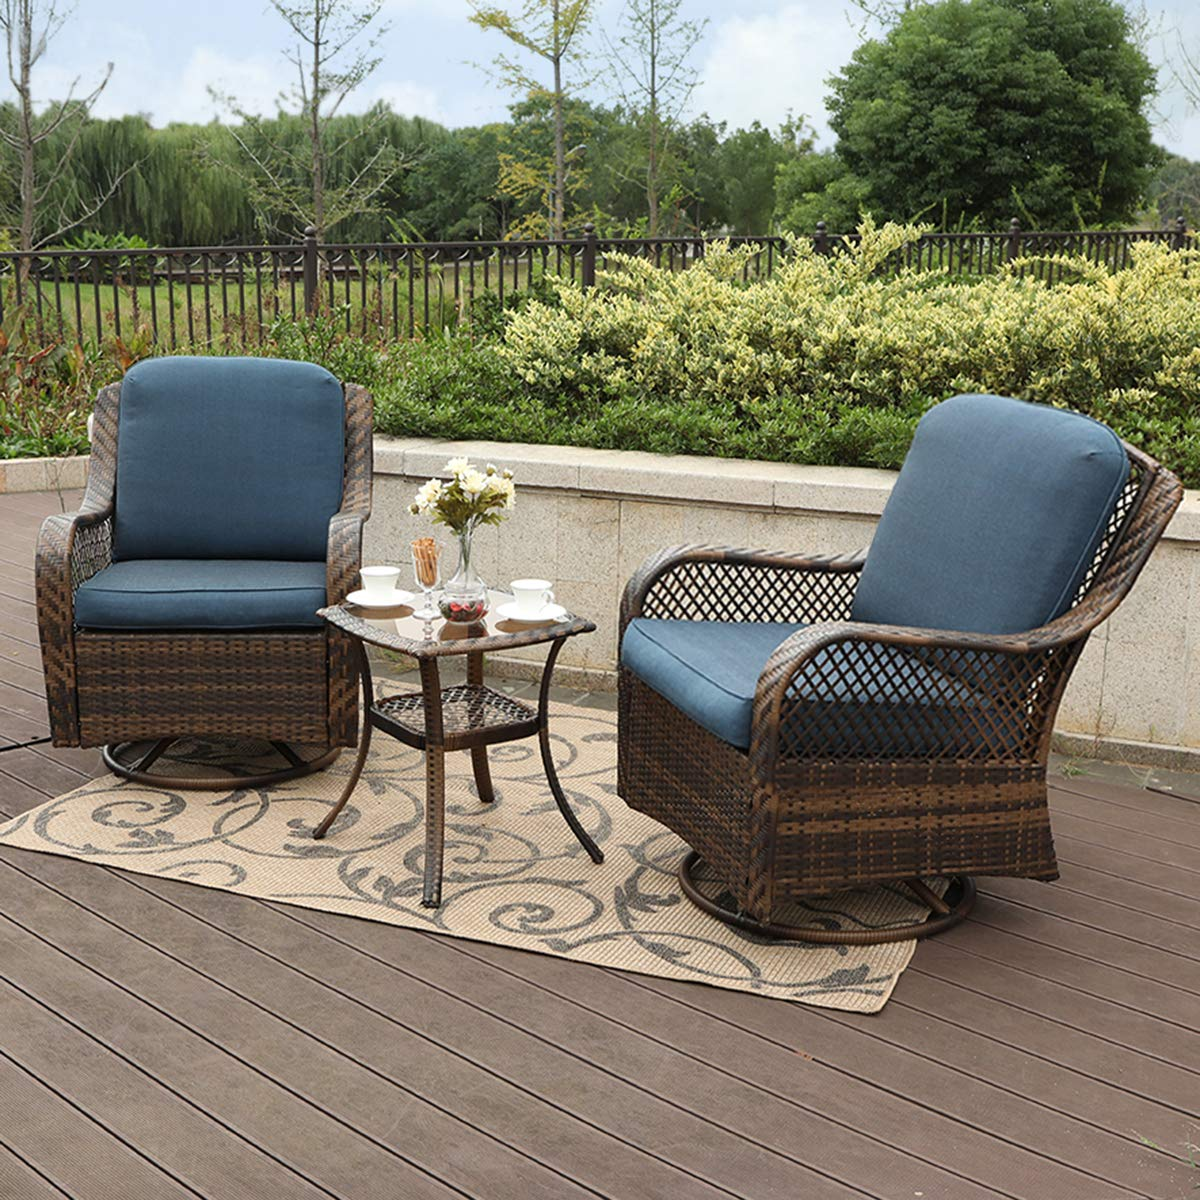 Amazon com phi villa rattan swivel rocking chairs 3 pc patio conversation set 2 cushioned chairs 1 side table garden outdoor